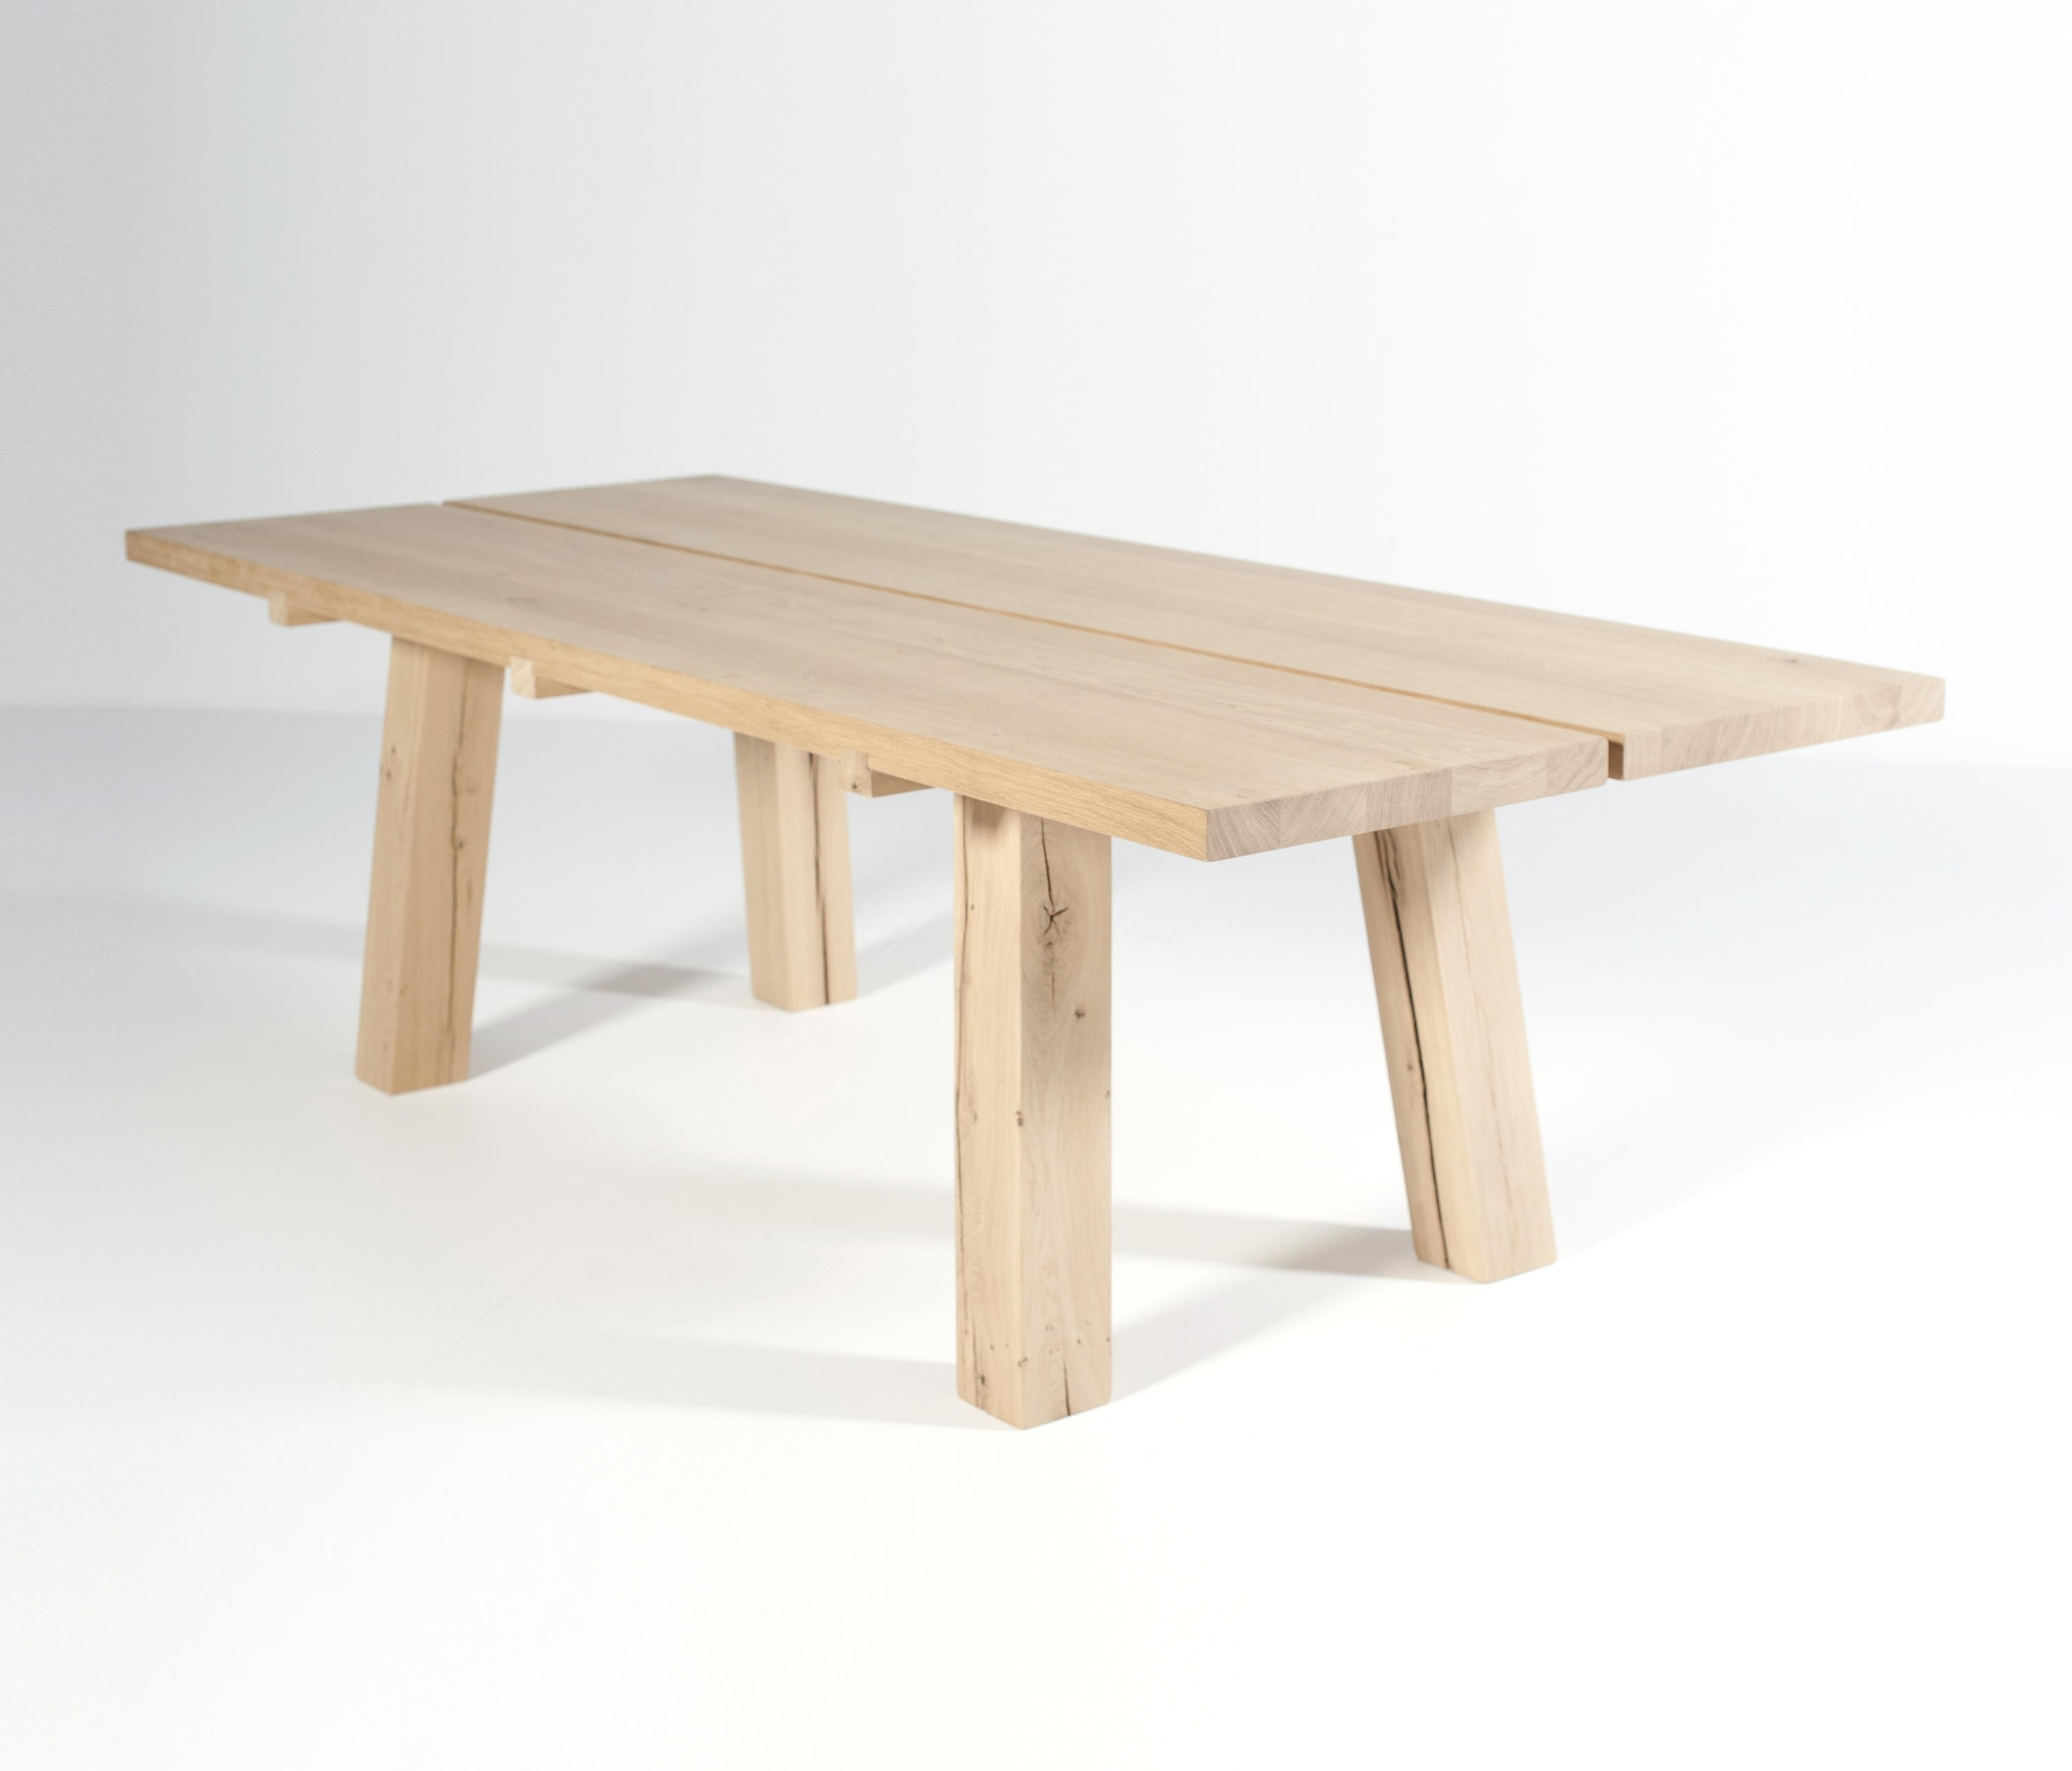 Most Recently Released Square Extendable Dining Tables With Regard To Square Extendable Dining Table New Rustic Solid Oak Extending Dining (View 9 of 25)